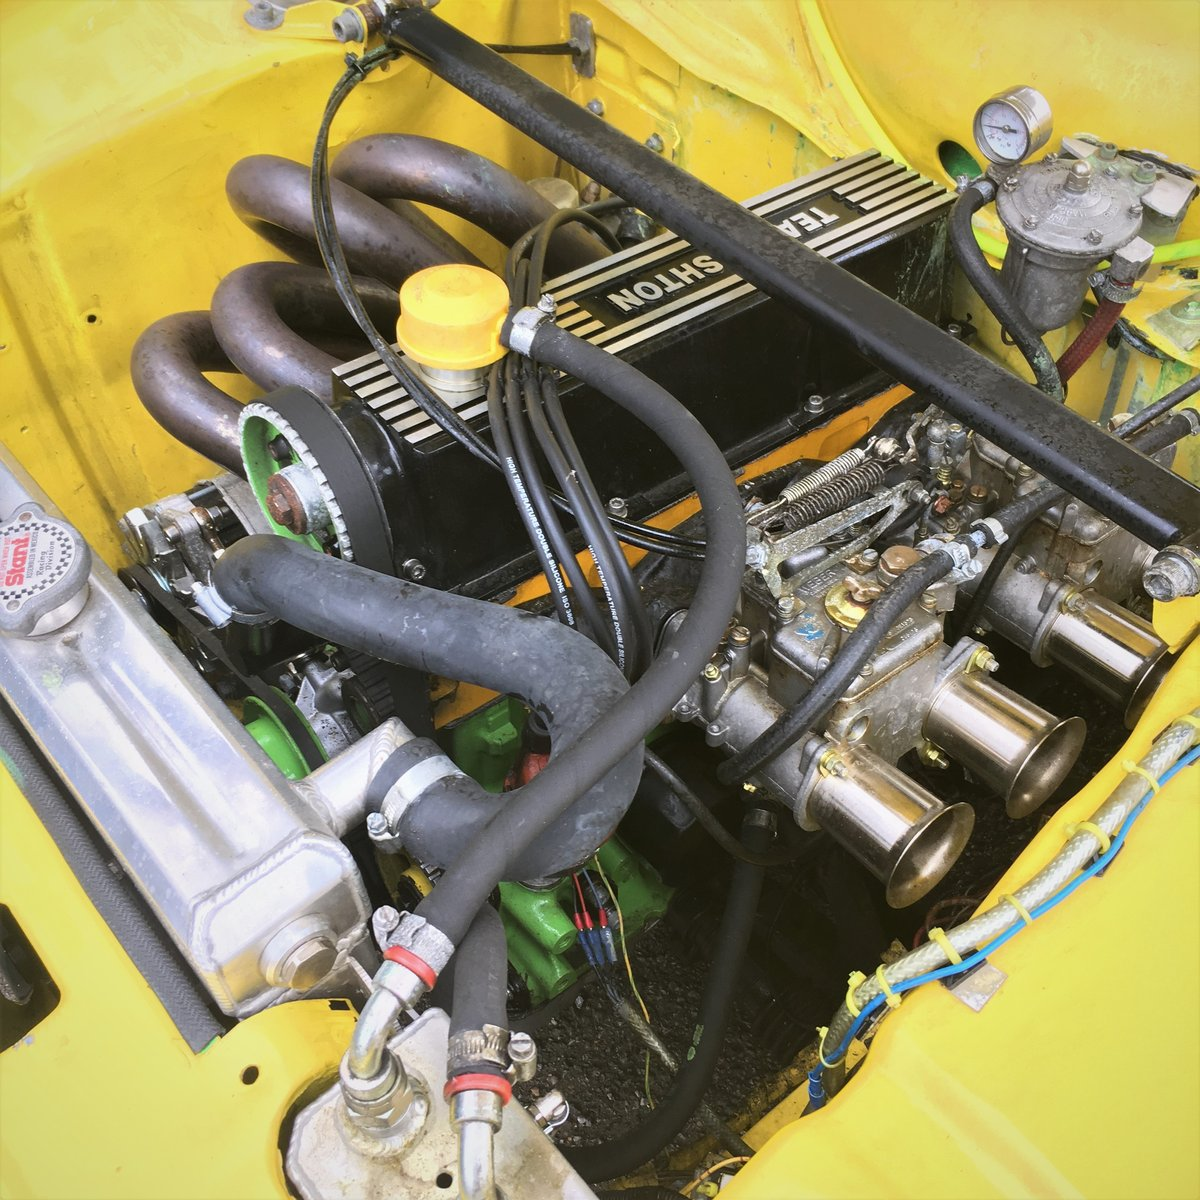 1973 MK1 Ford Escort - 2.1 Pinto Engine For Sale (picture 6 of 6)